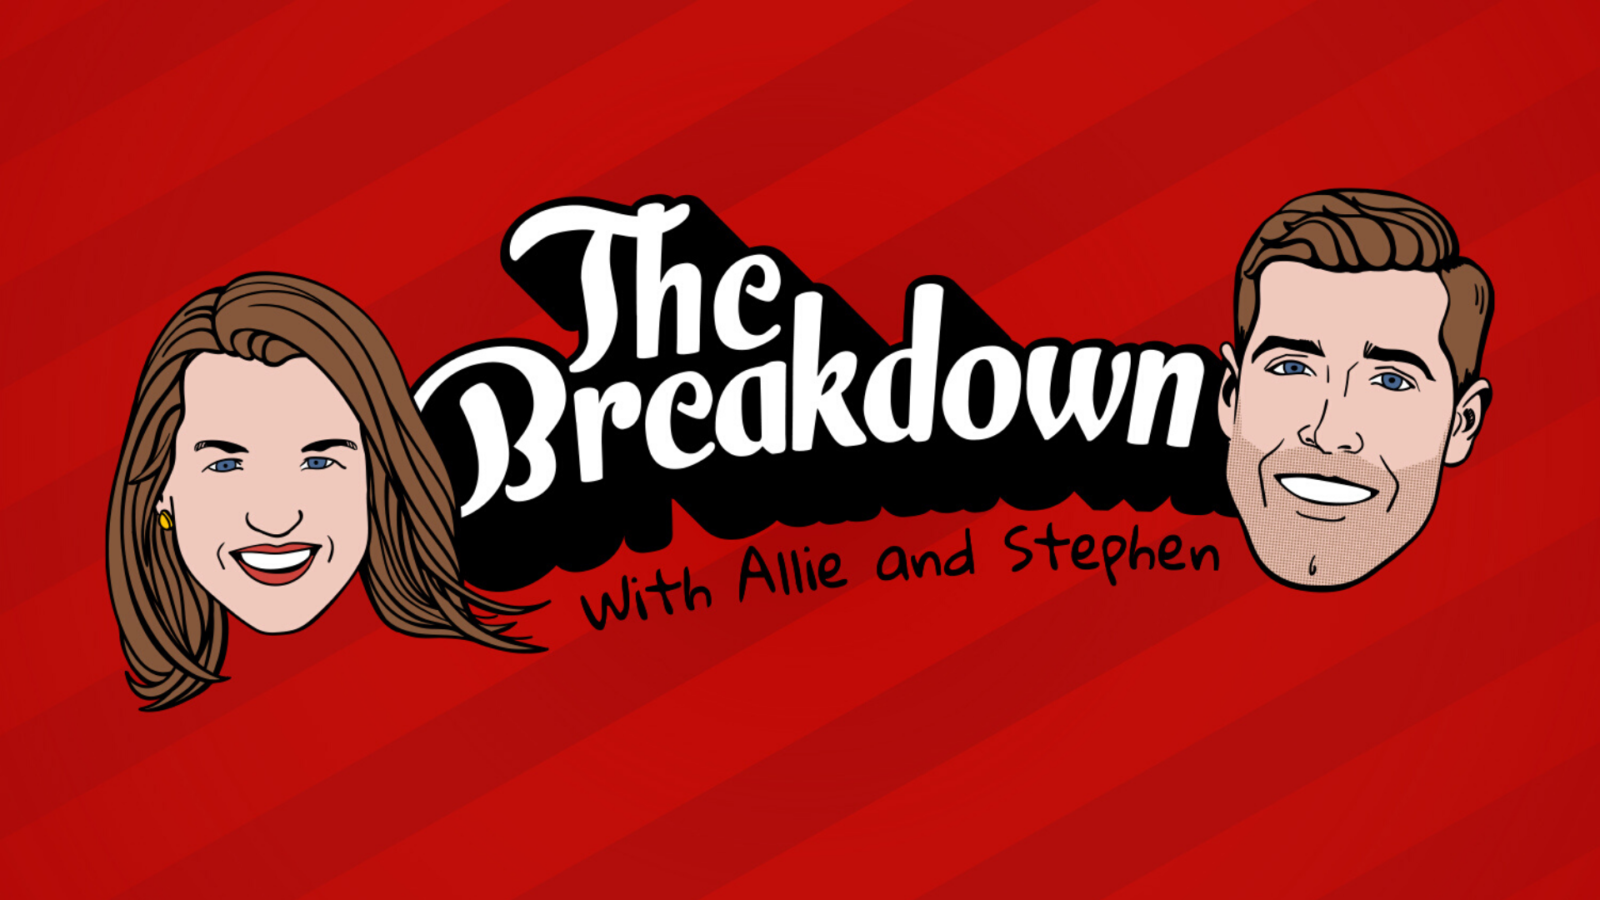 The Breakdown with Allie and Stephen